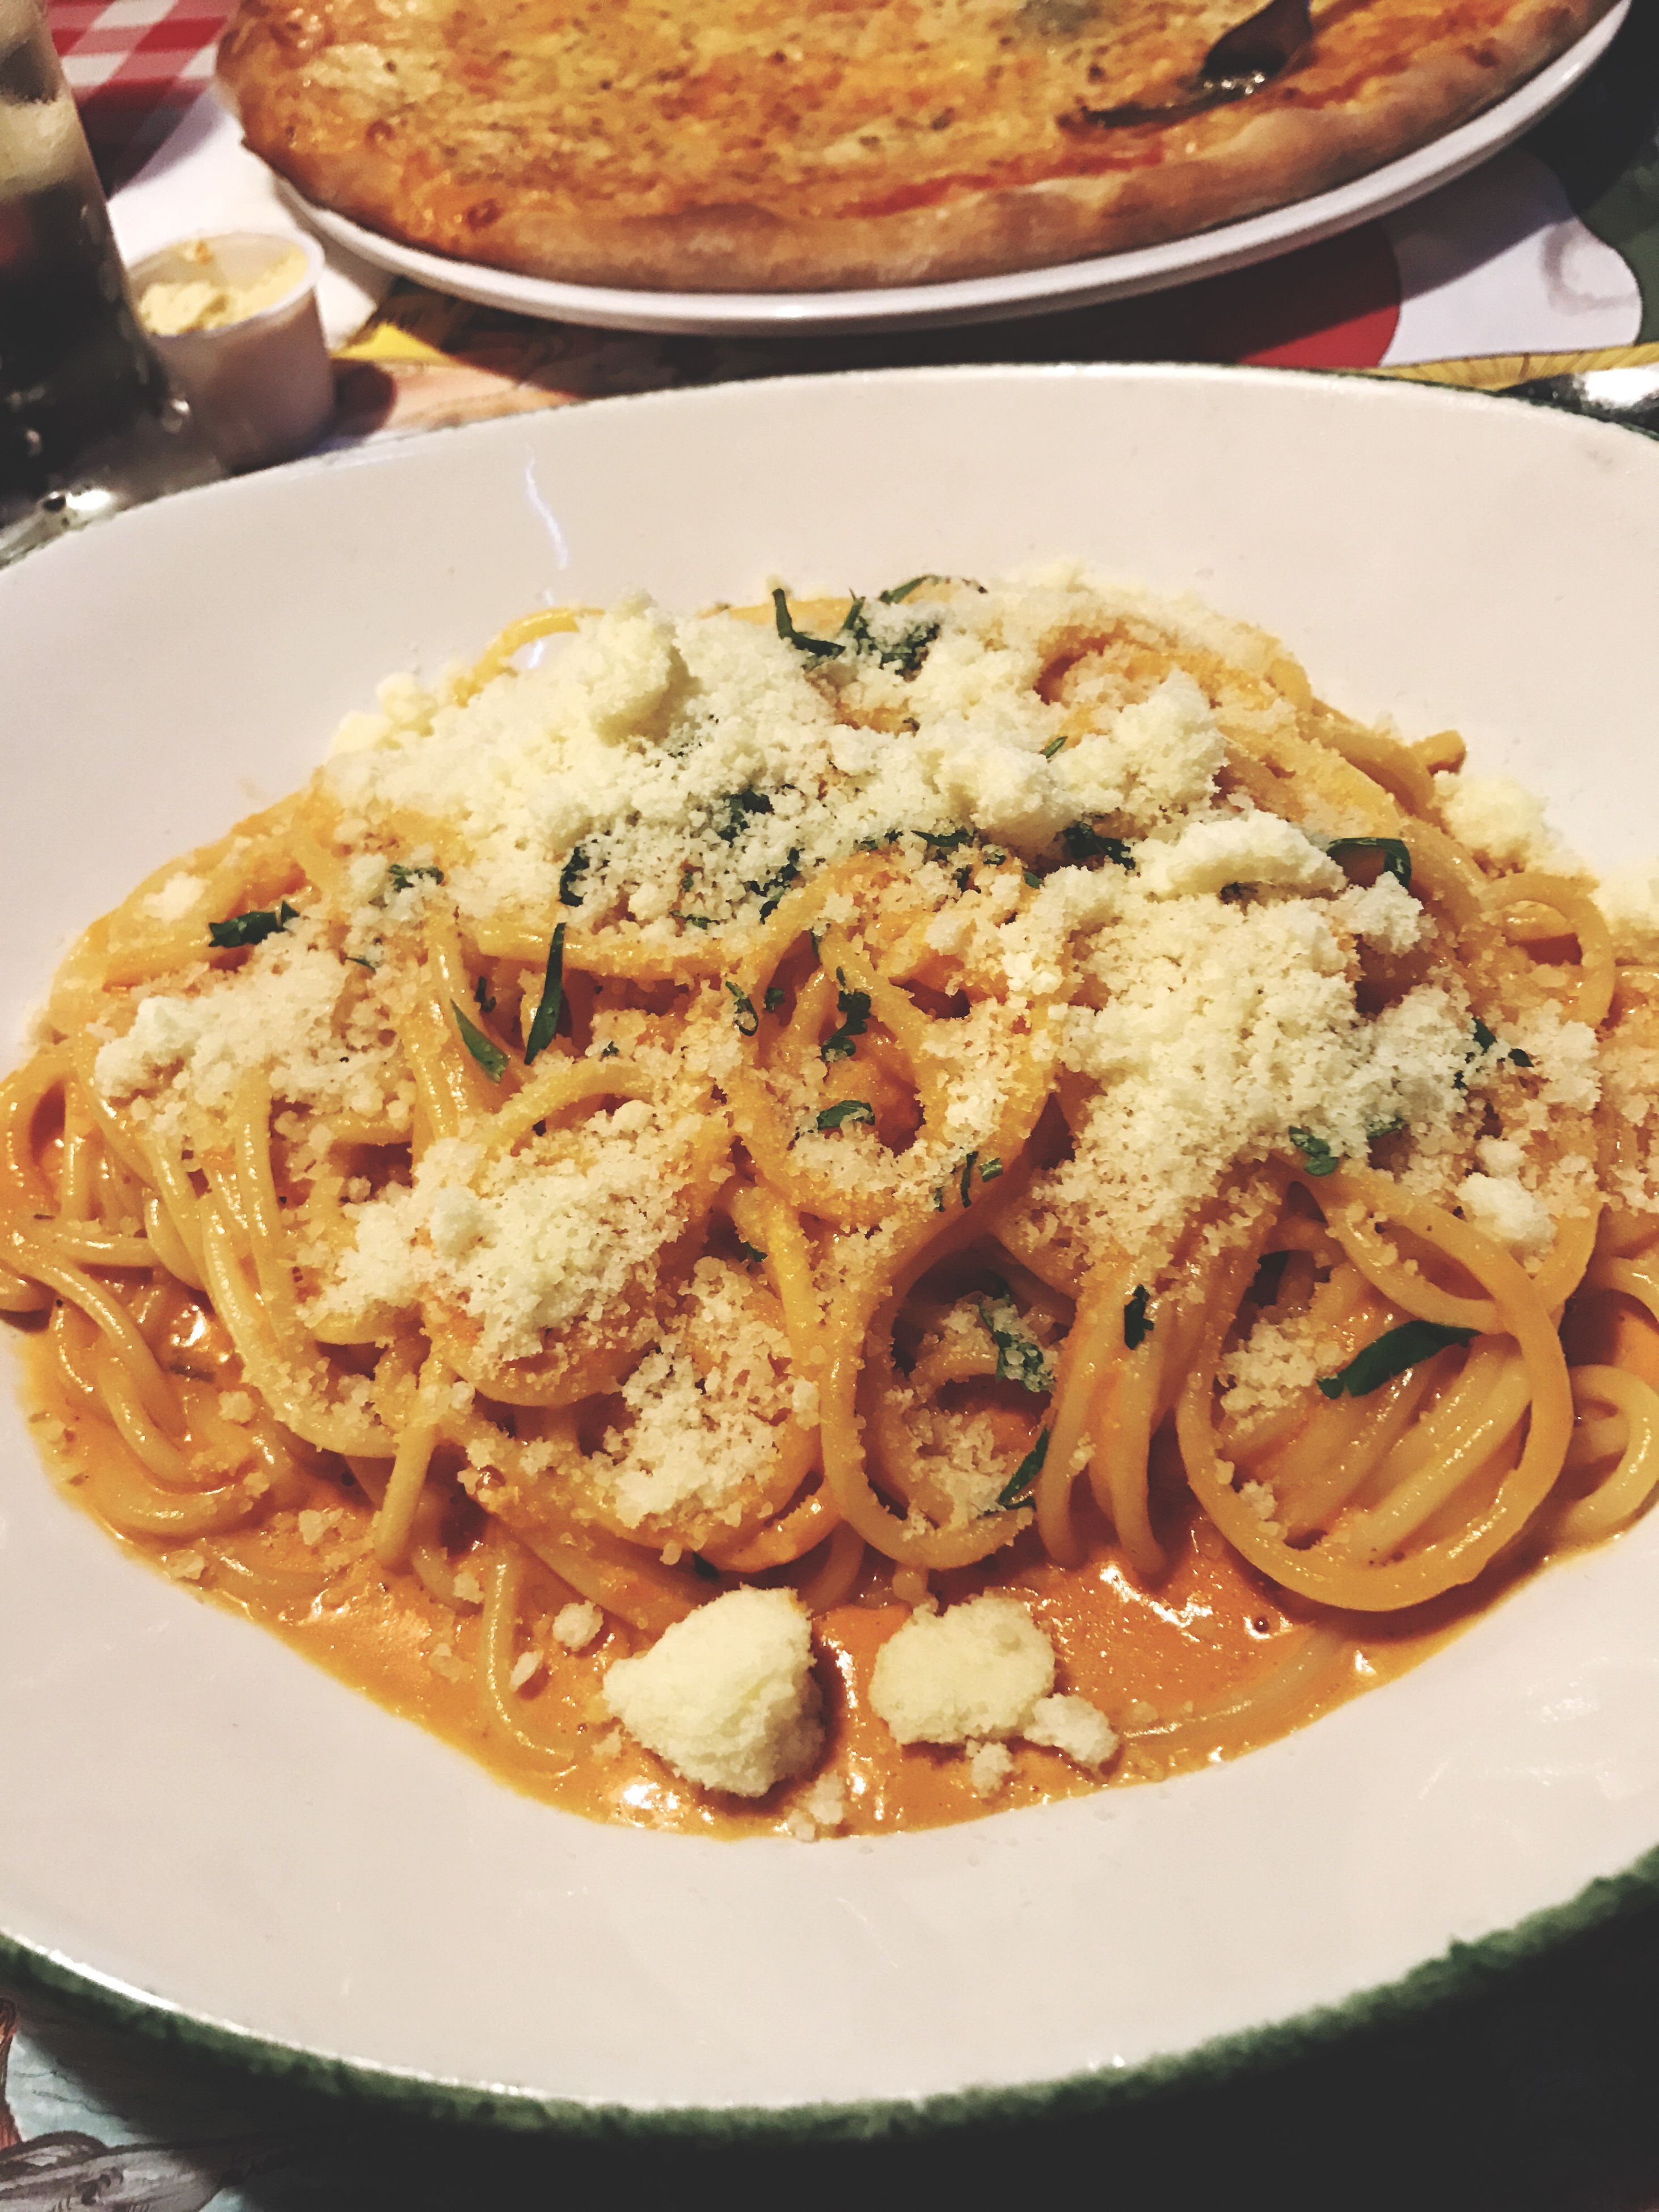 food, plate, food and drink, freshness, ready-to-eat, serving size, homemade, high angle view, indulgence, close-up, temptation, indoors, italian food, cooked, no people, meal, unhealthy eating, table, food state, day